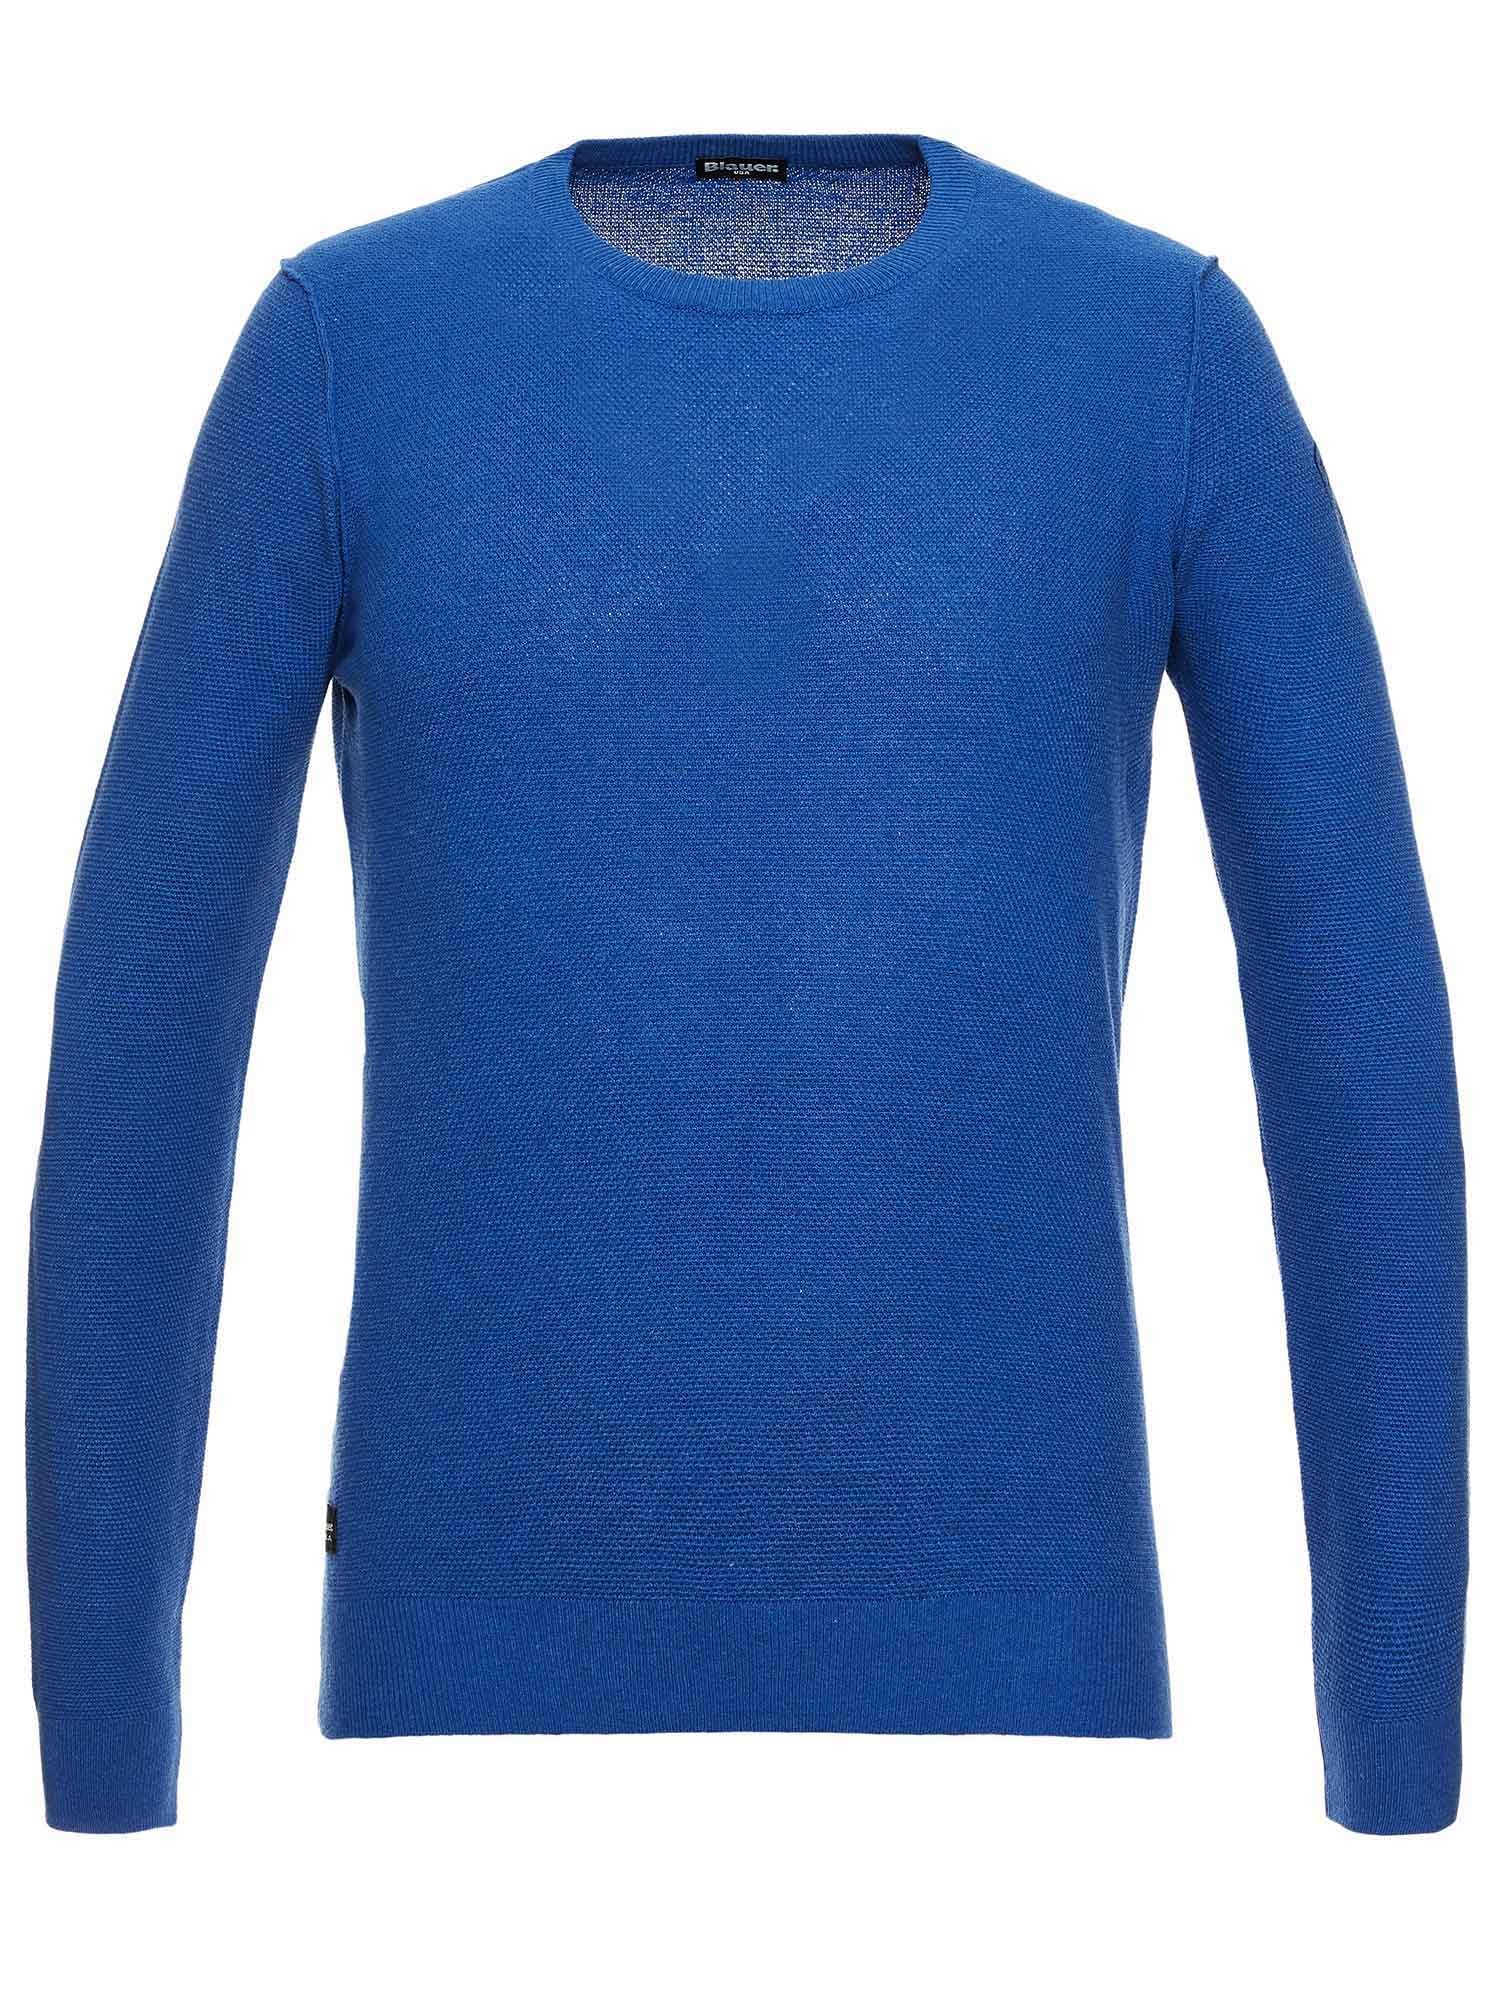 CREW NECK KNIT TOP WITH EMBROIDERED BLAUER LOGO - Blauer